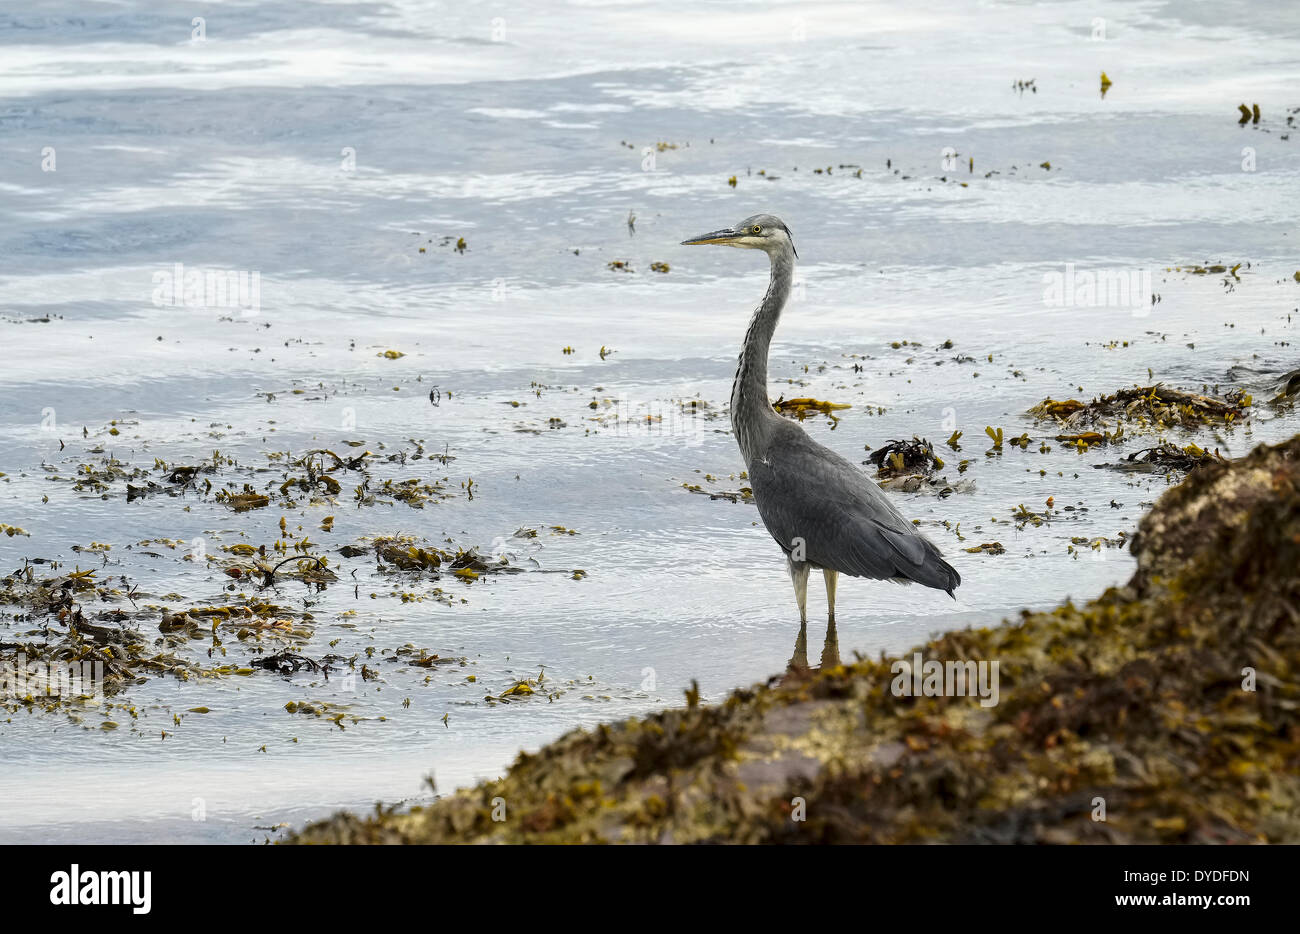 A heron waits patiently by the waters edge. - Stock Image